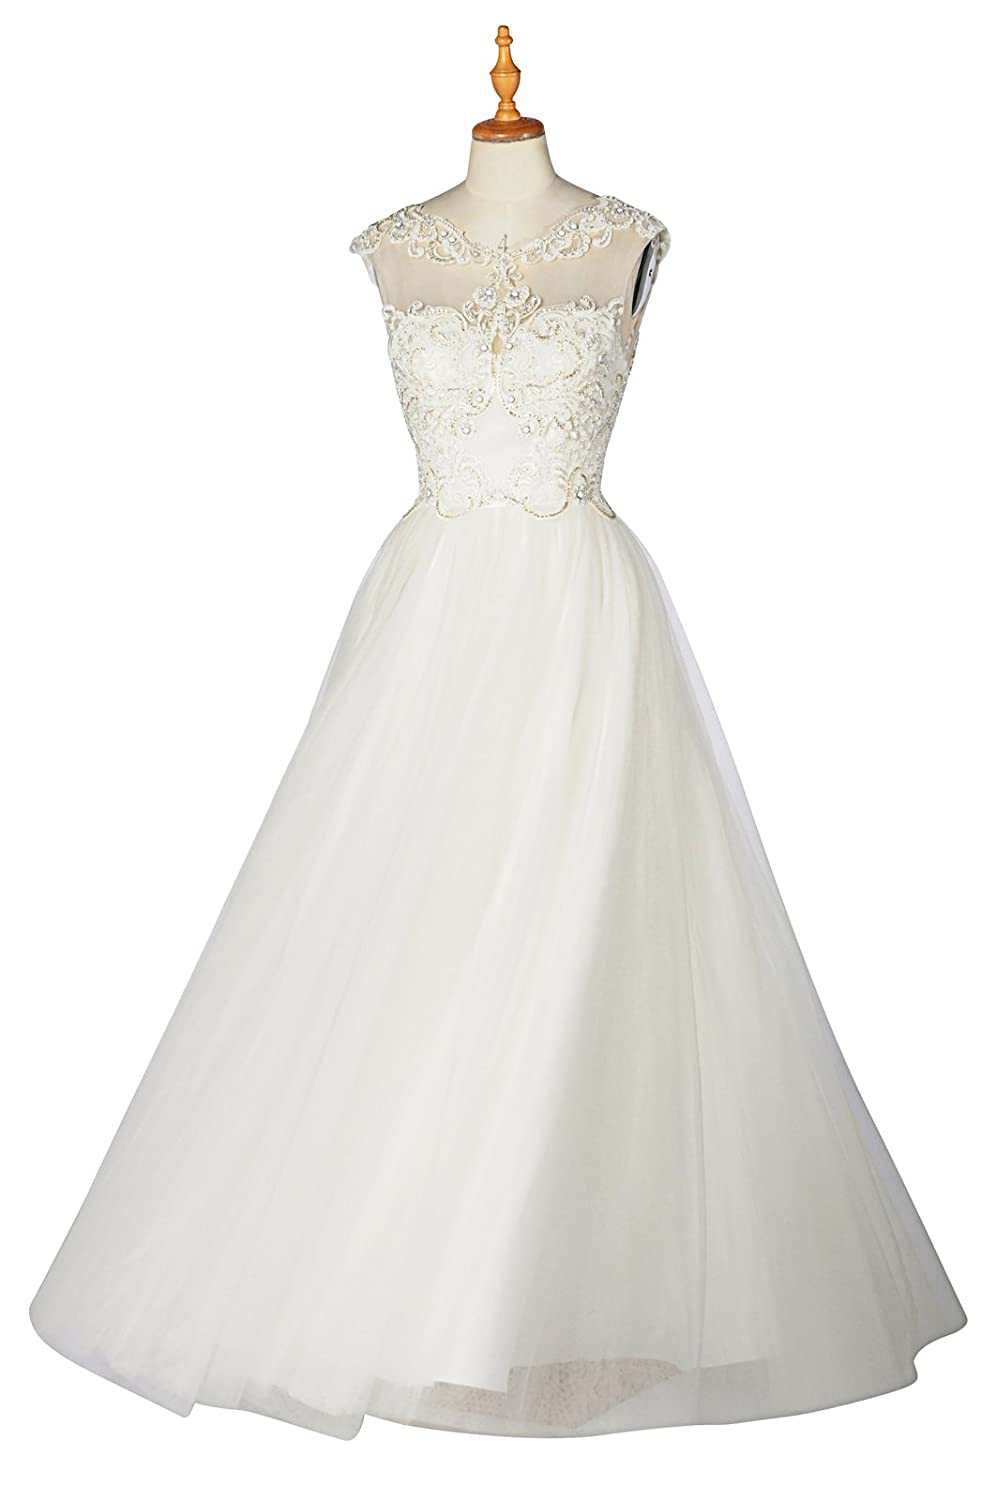 99gown Wedding Dresses For Bride Lace Natural Scoop Sleeveless Long